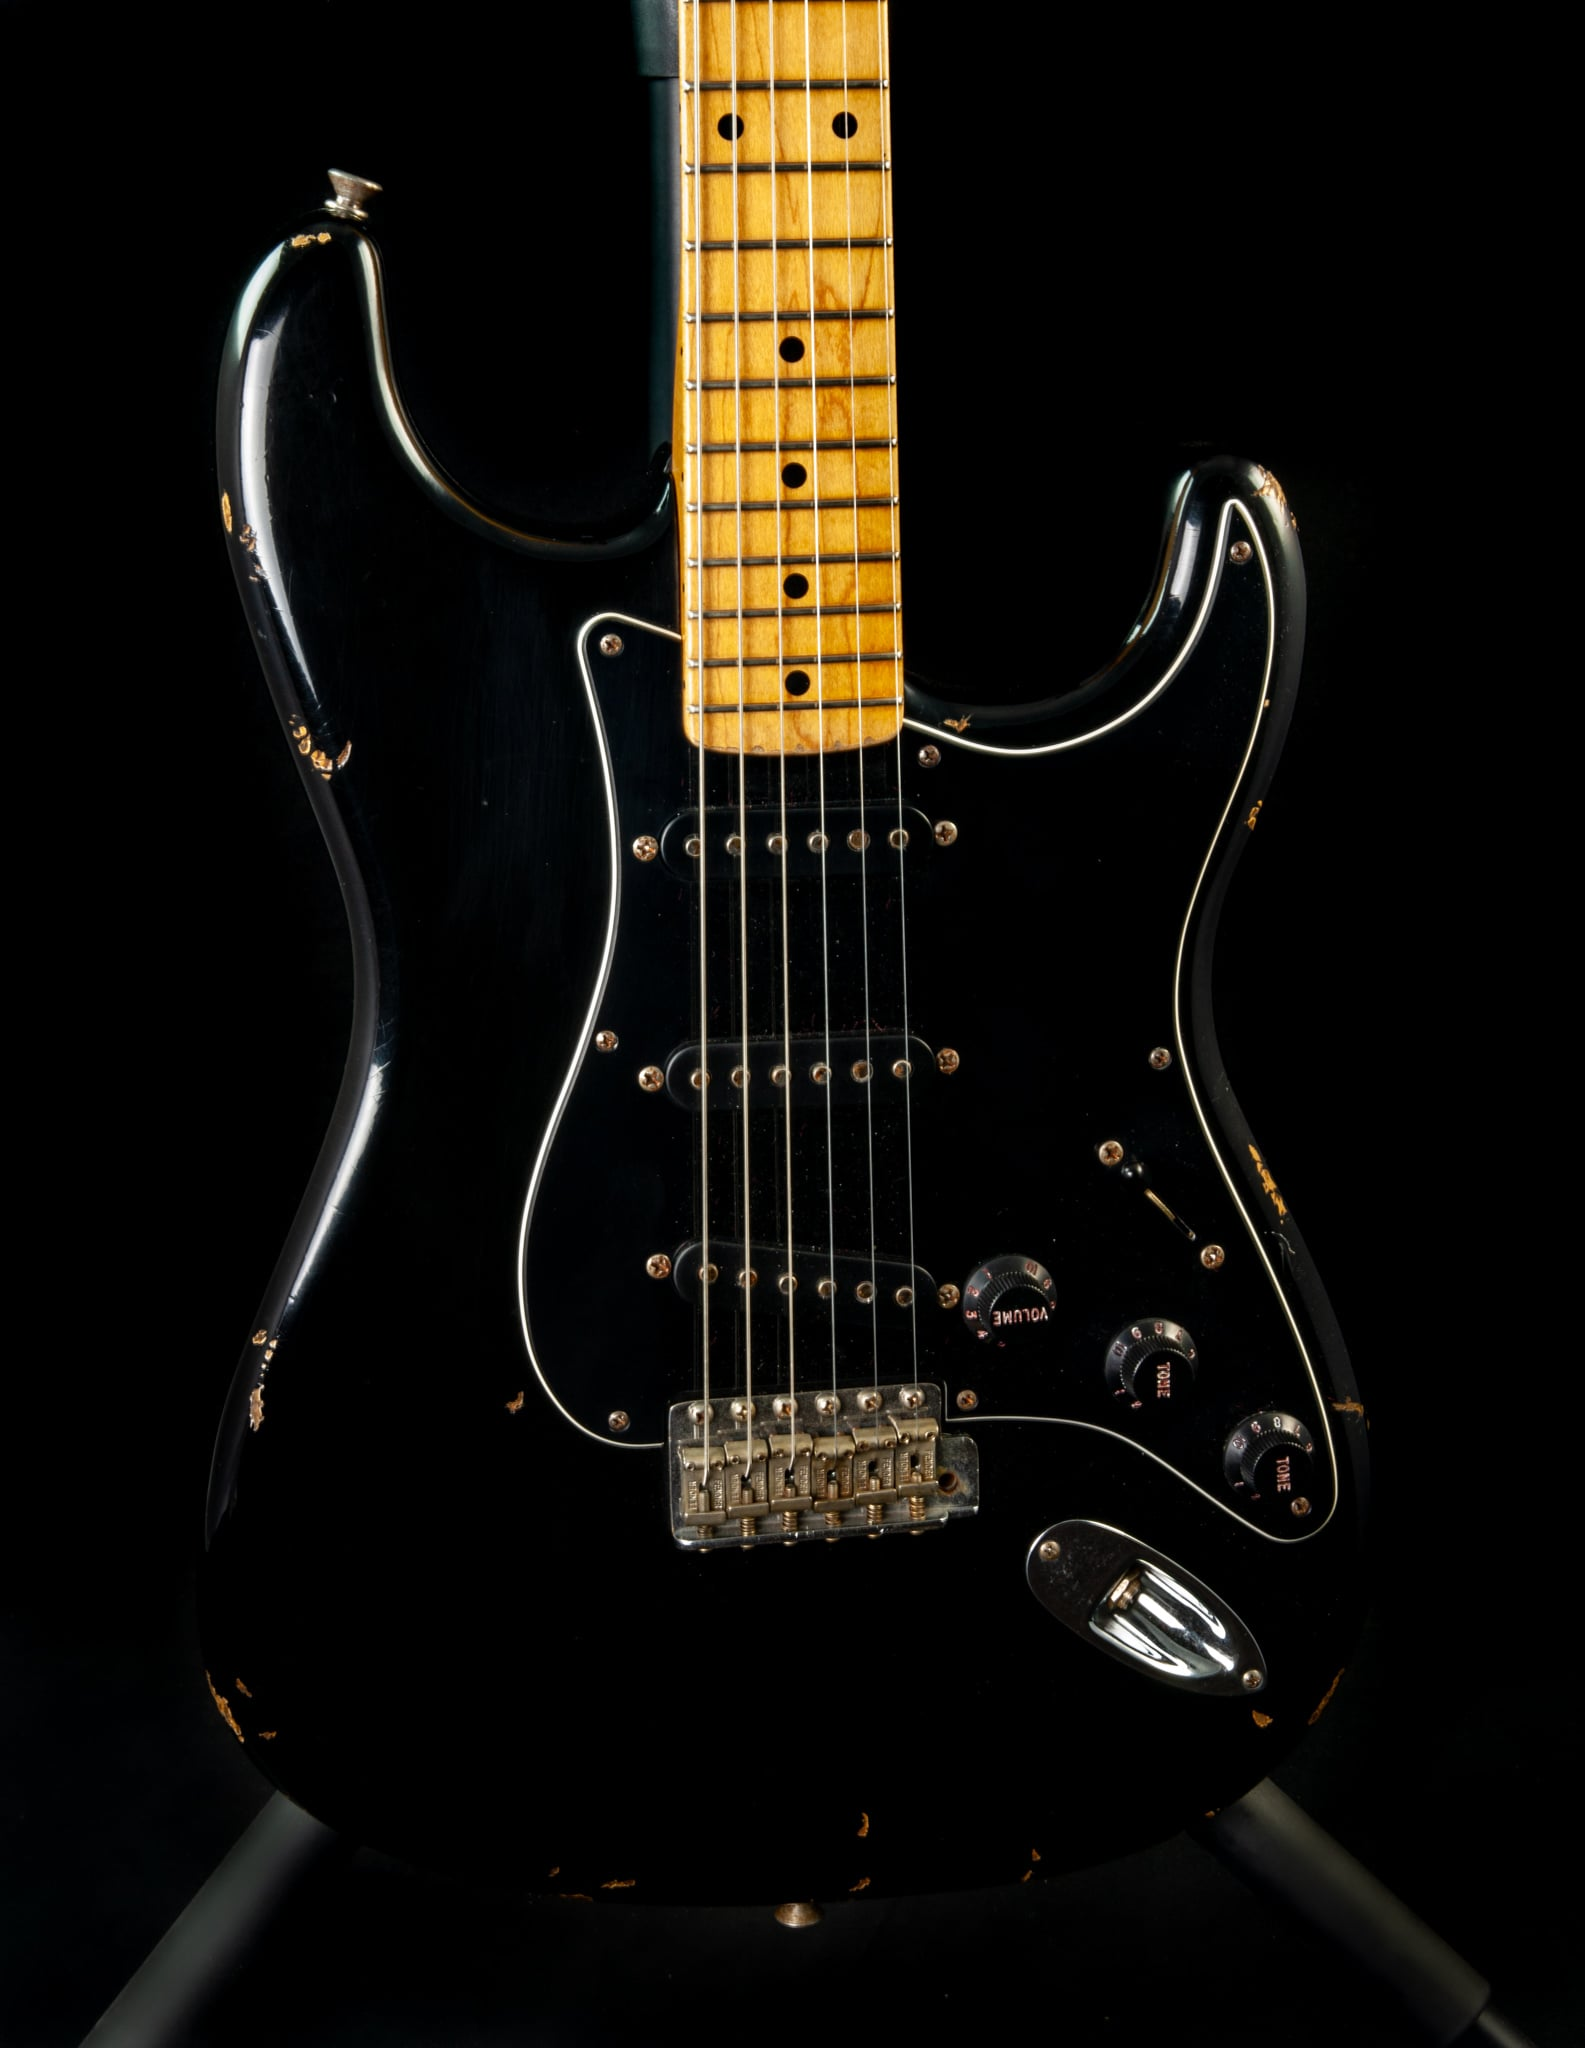 Fender Custom Shop '56 Stratocaster Relic in Aged Black, Pre-Owned